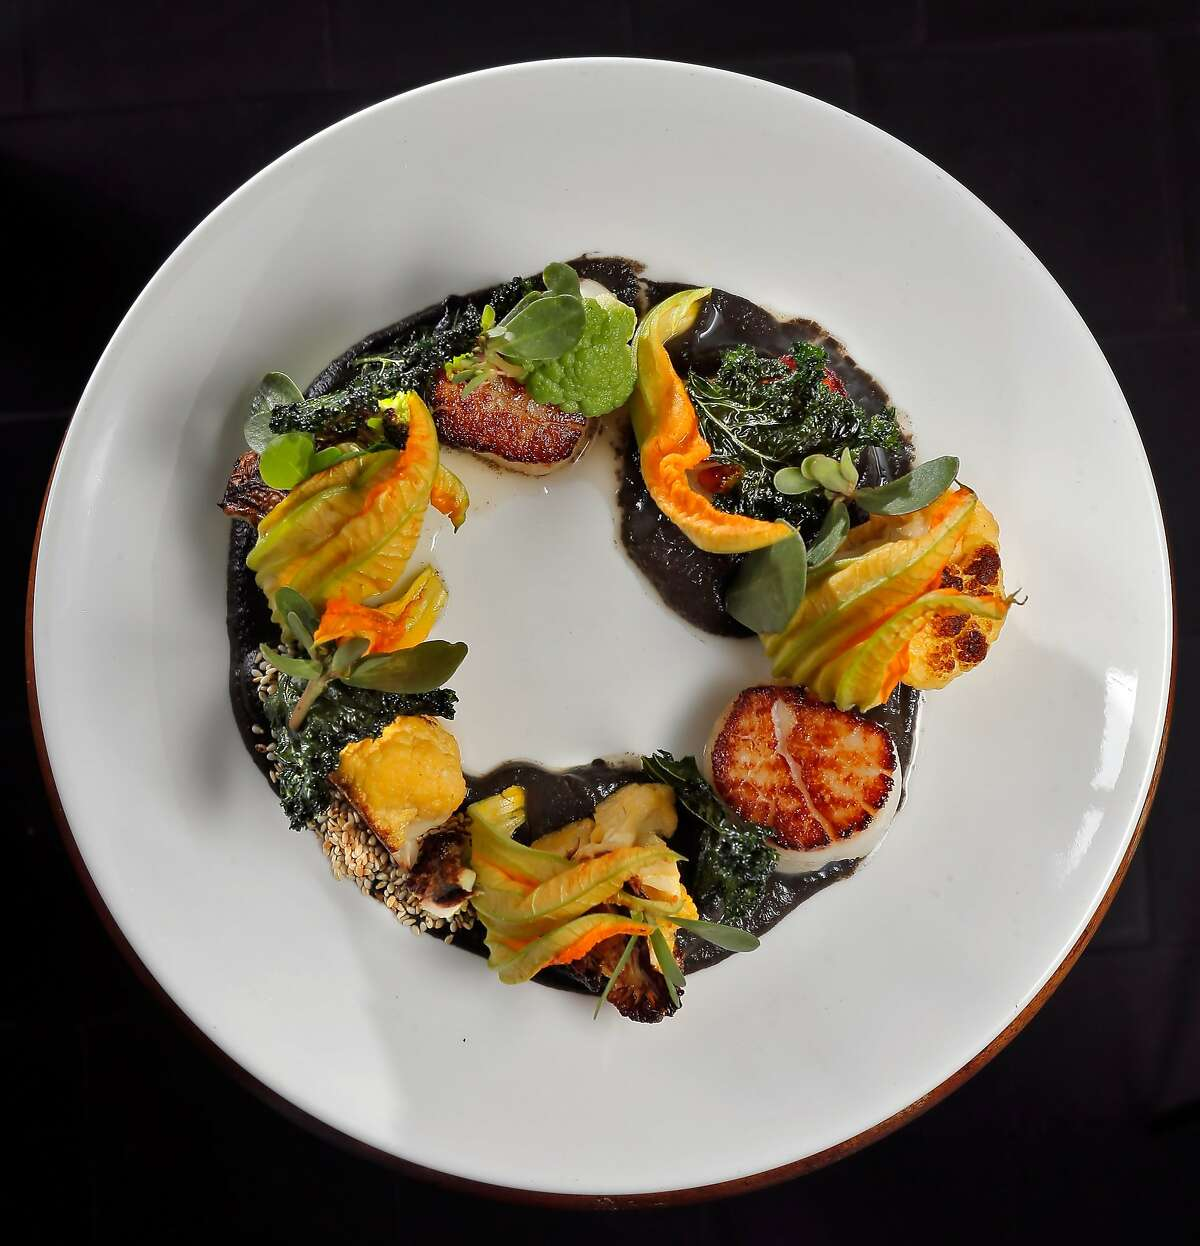 La Urbana in San Francisco features an entree, Cast Iron Scallop with cauliflower, sesame seeds, squash blossoms and kale, which features a Mexican delicacy, huitlacoche. Huitlacoche is